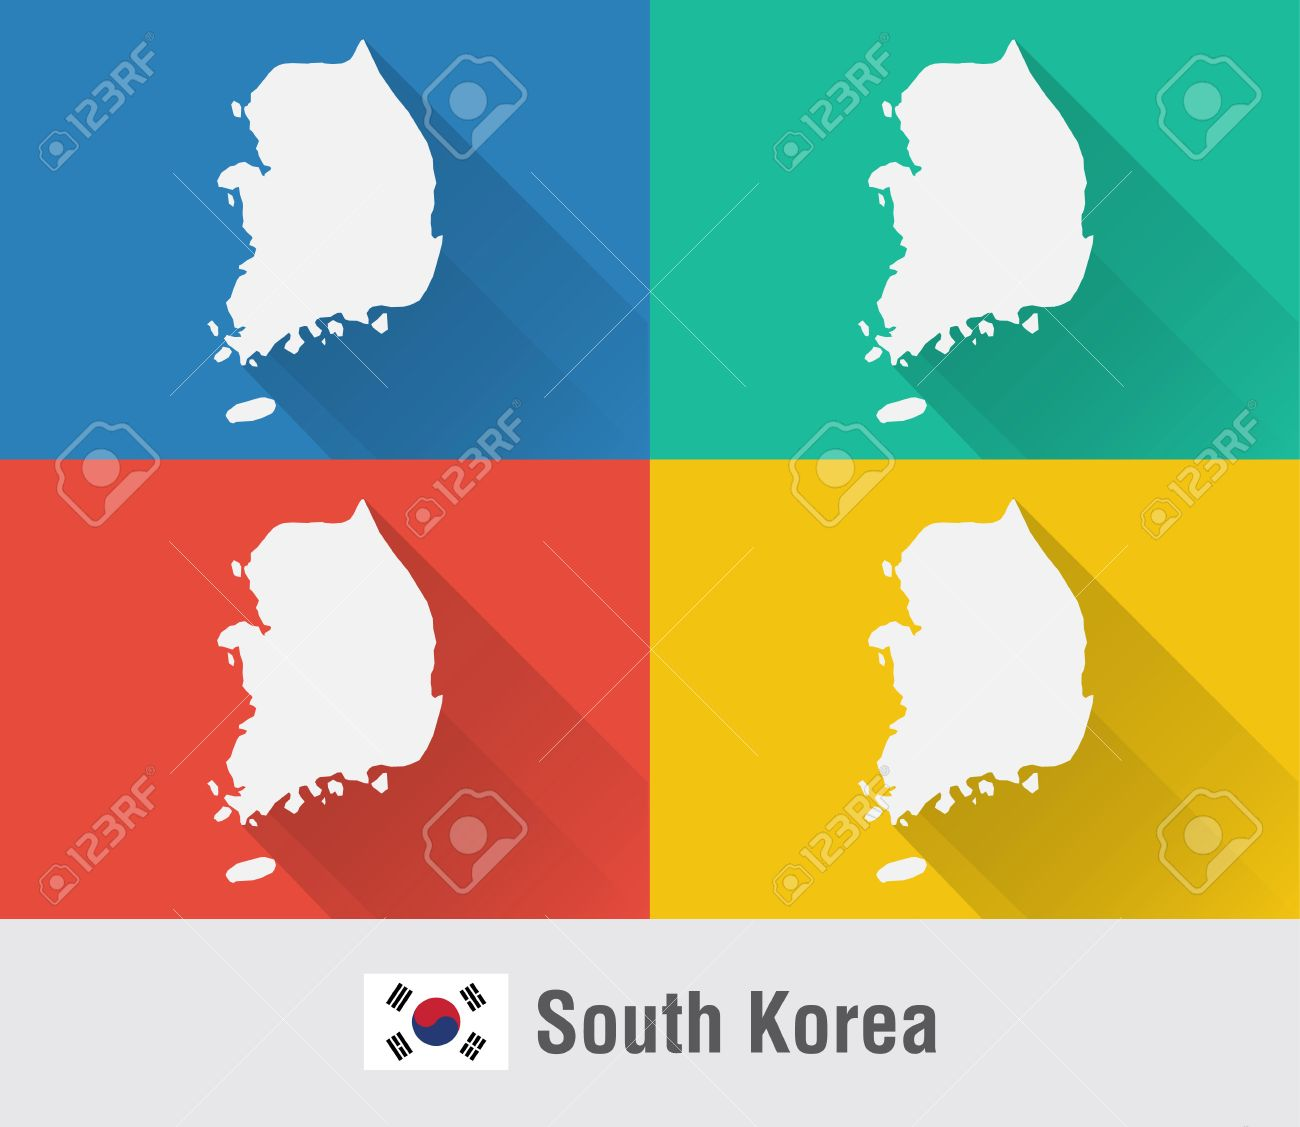 South Korea World Map In Flat Style With 4 Colors. Modern Map ...